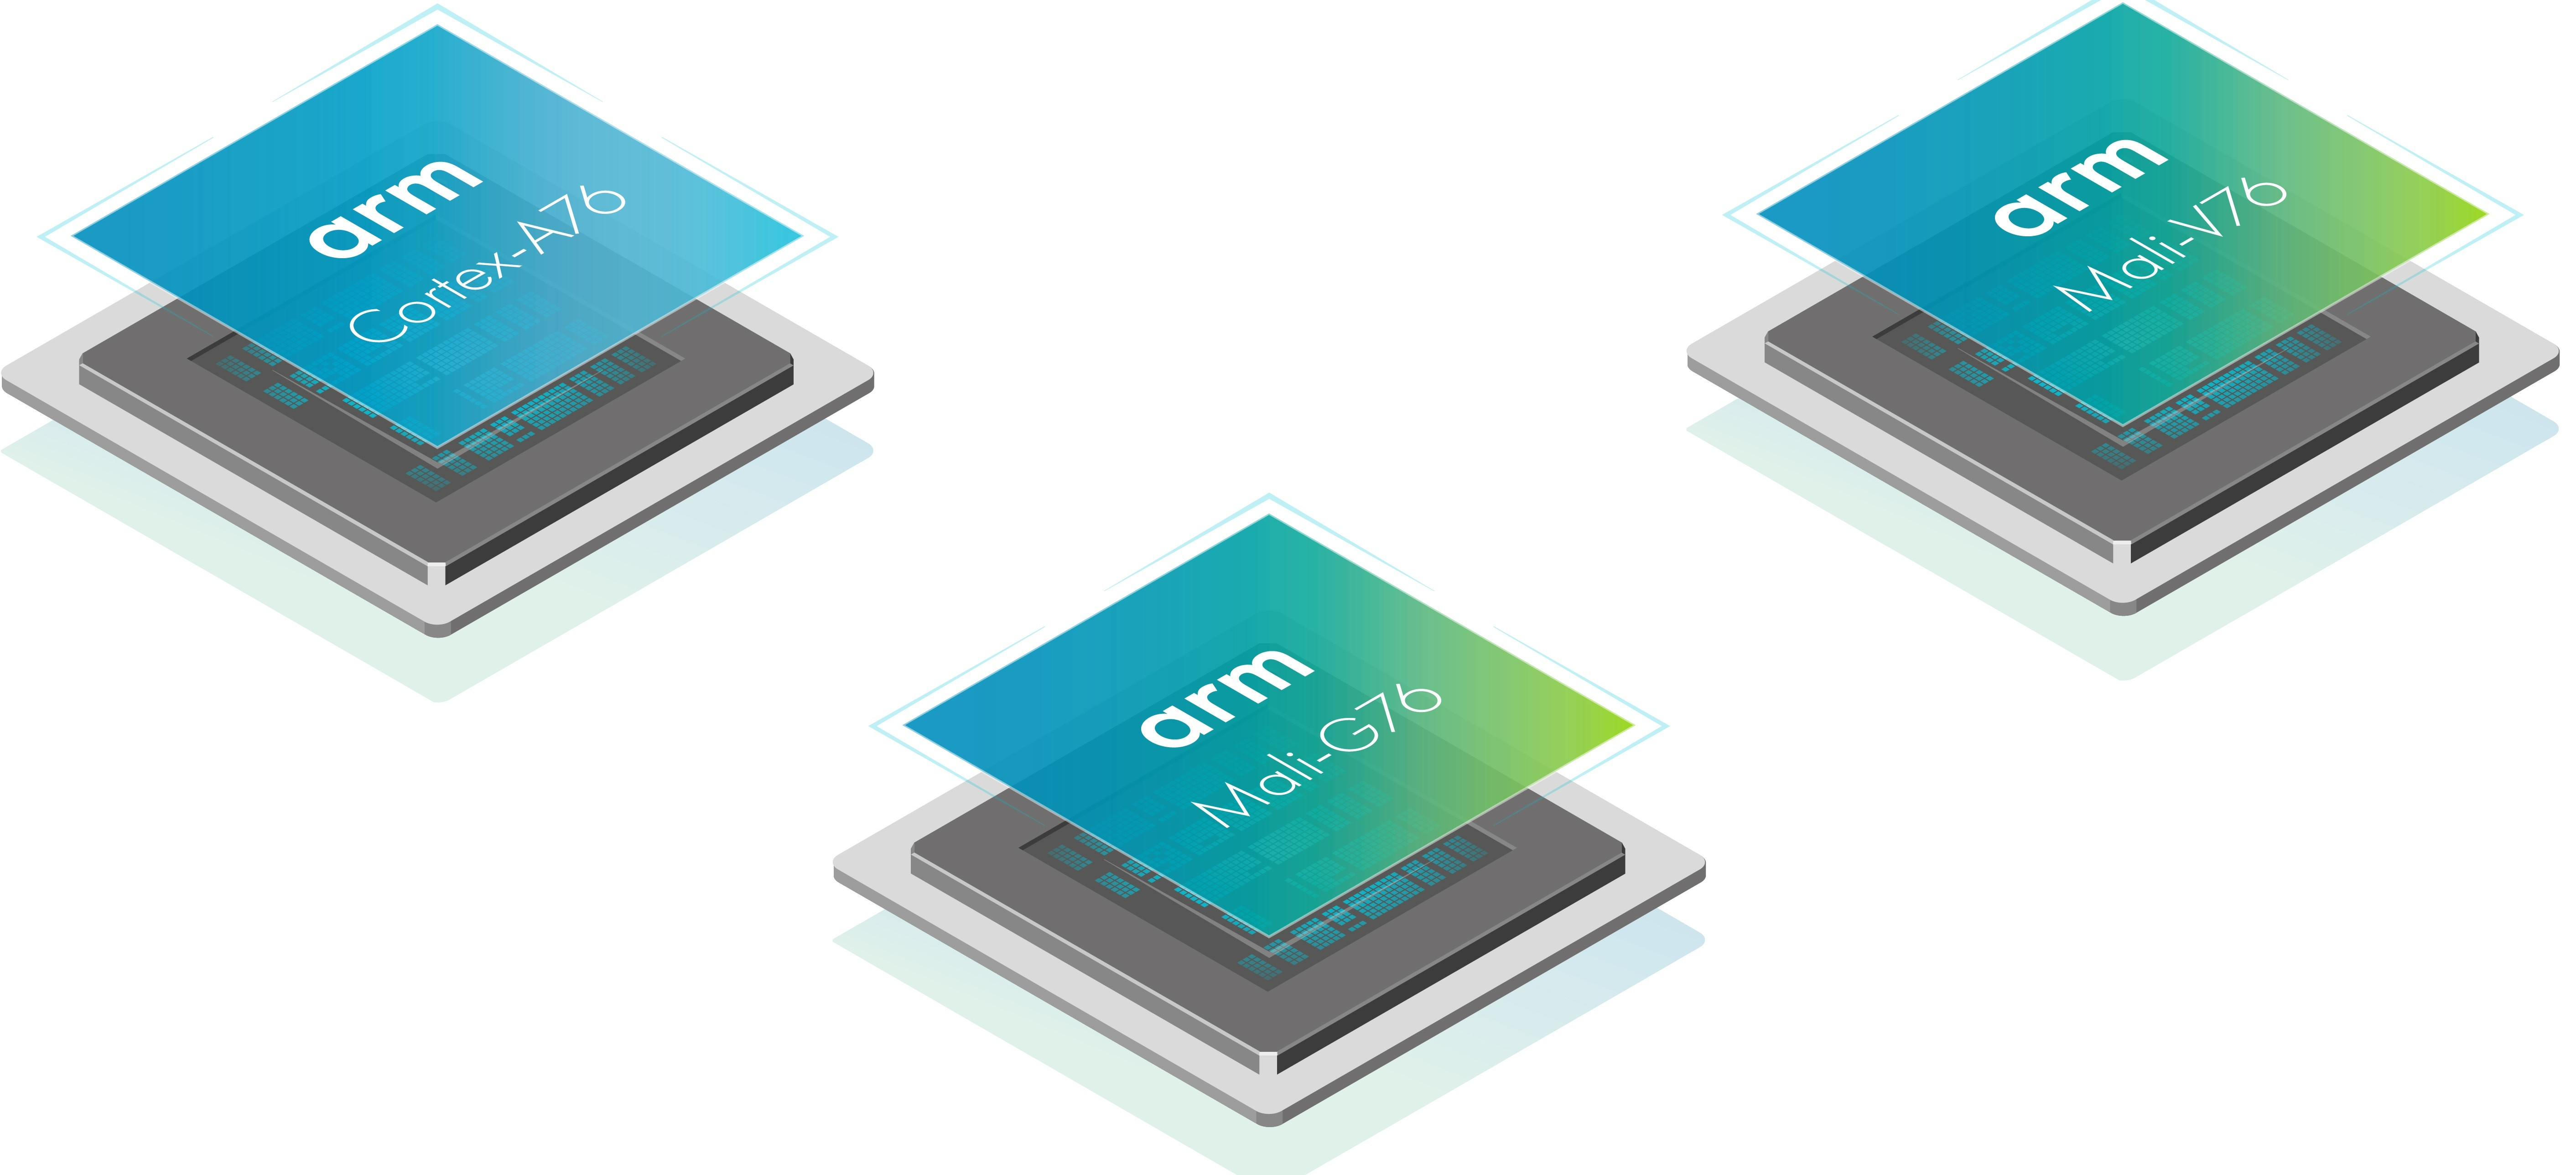 Arm thinks its next processors will outperform Intel's - Neowin